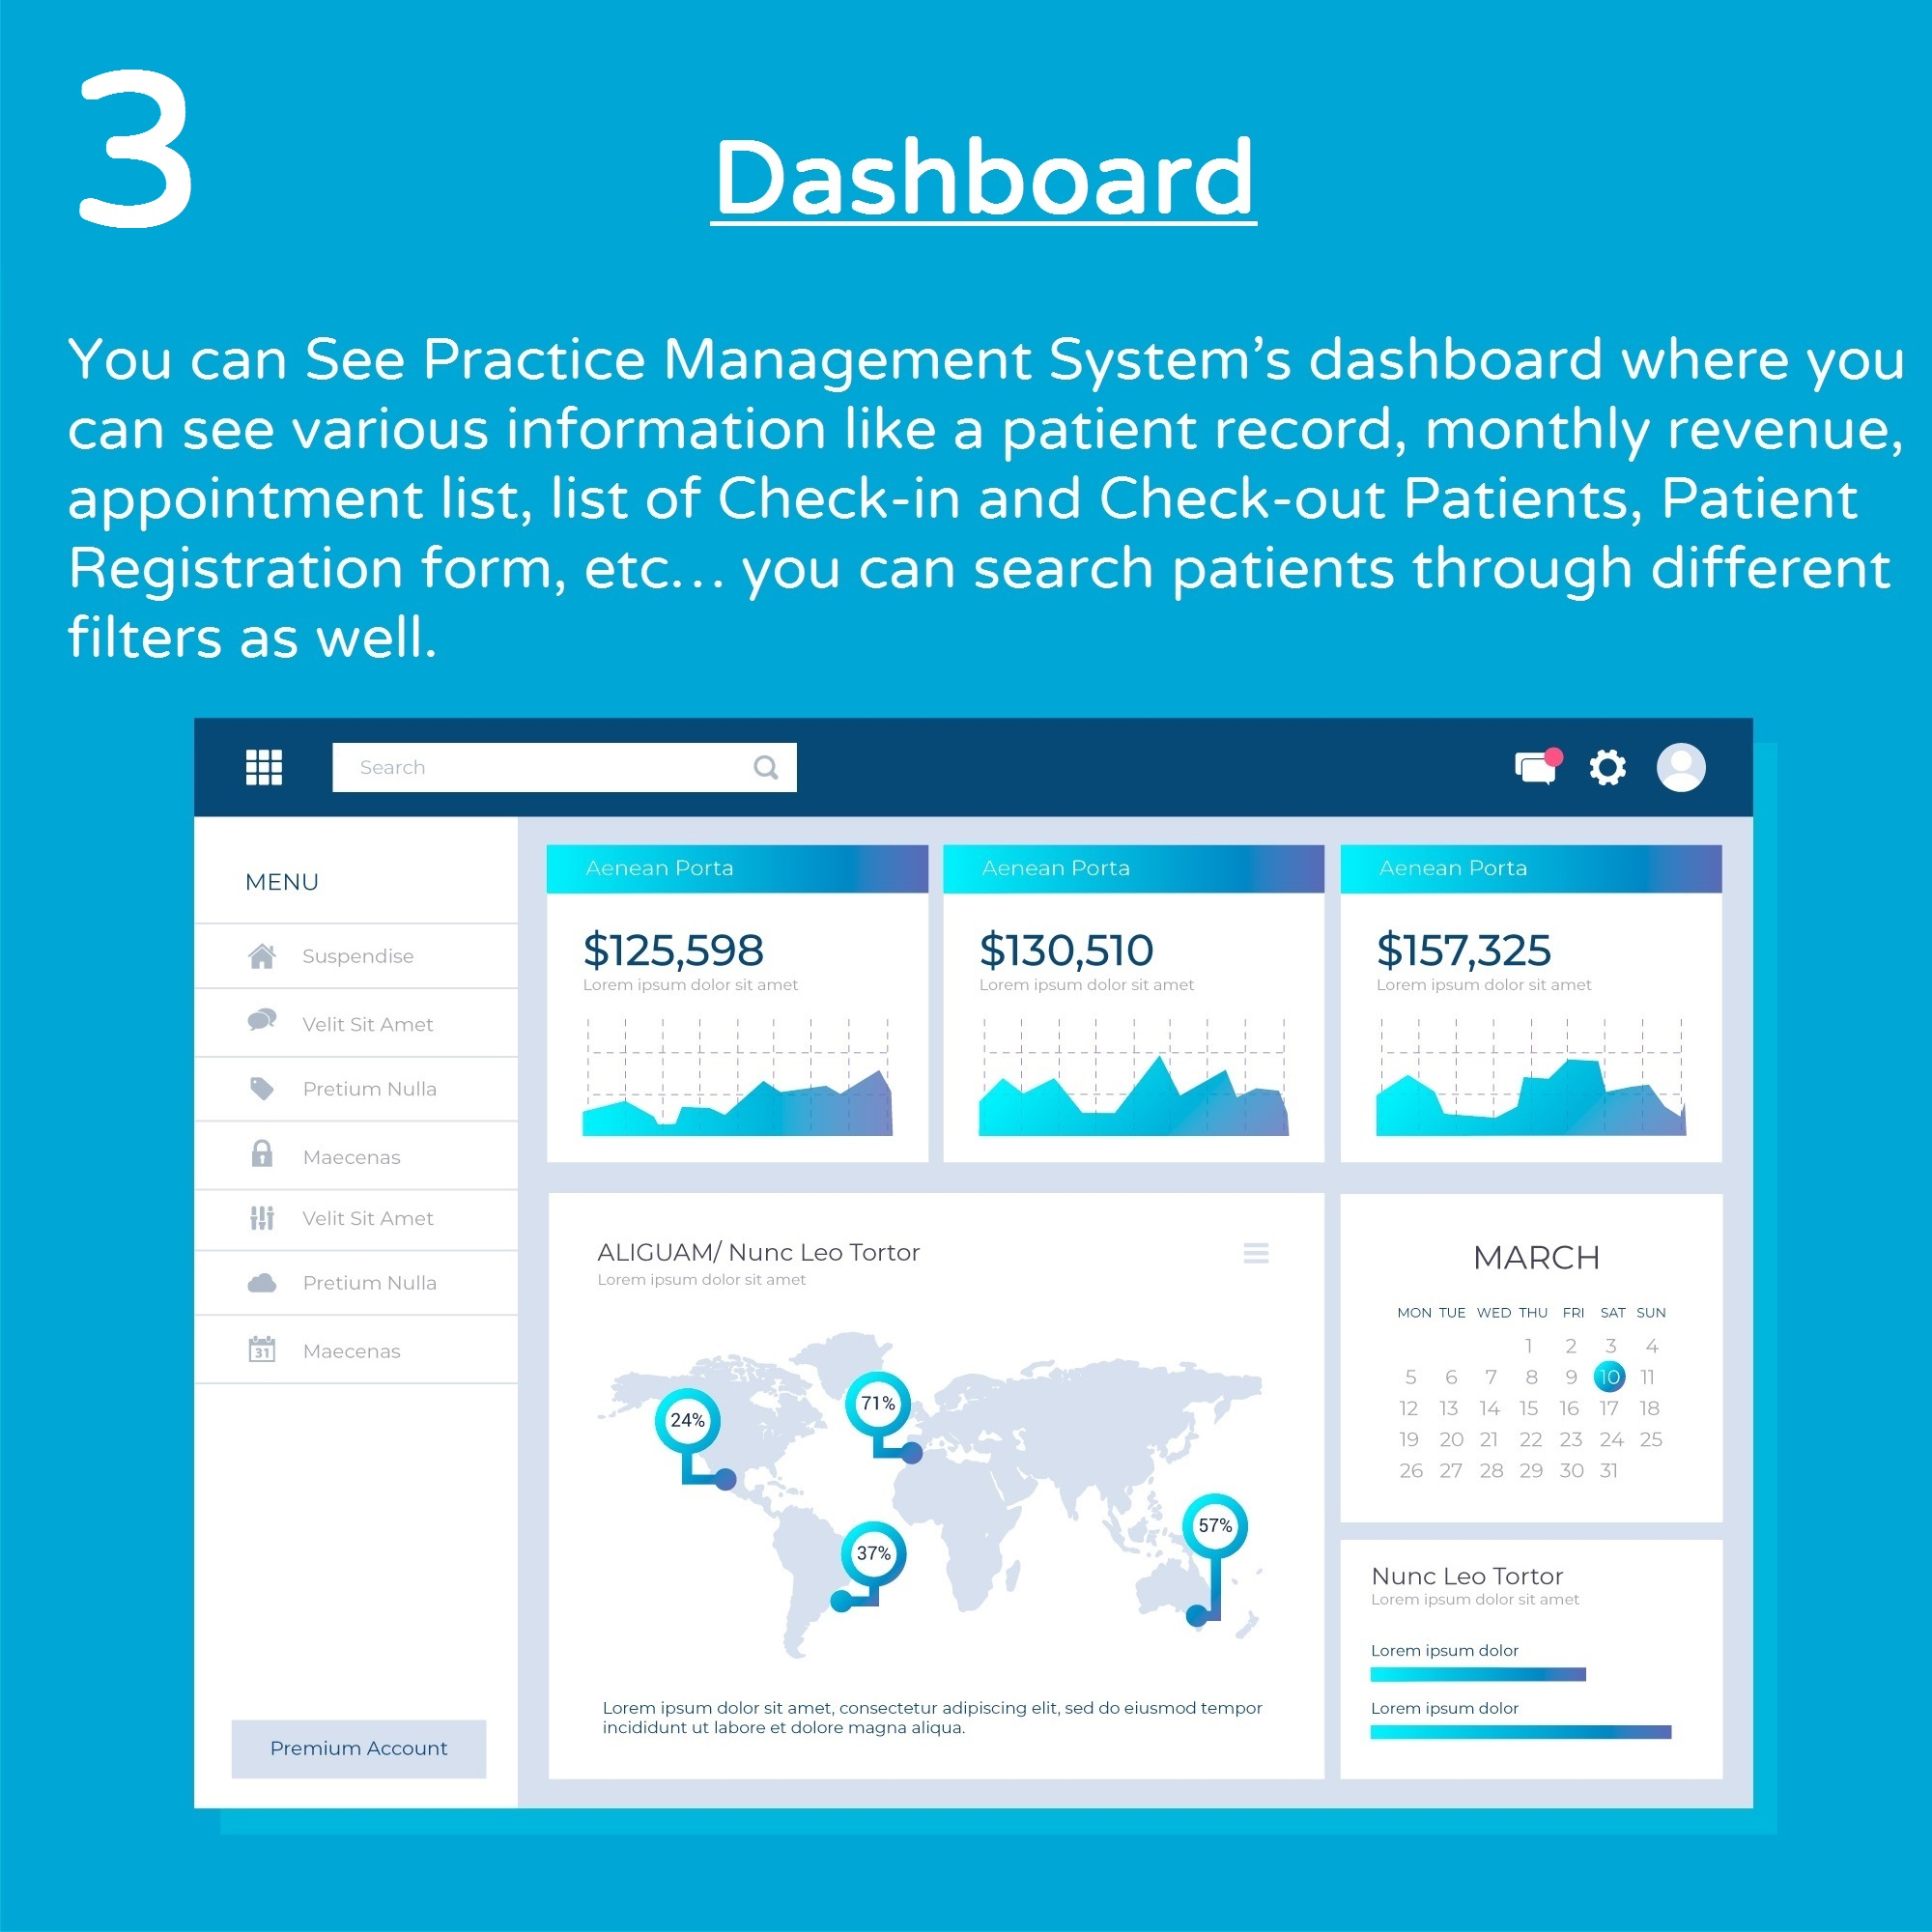 Dashboard Screen of Practice Management System